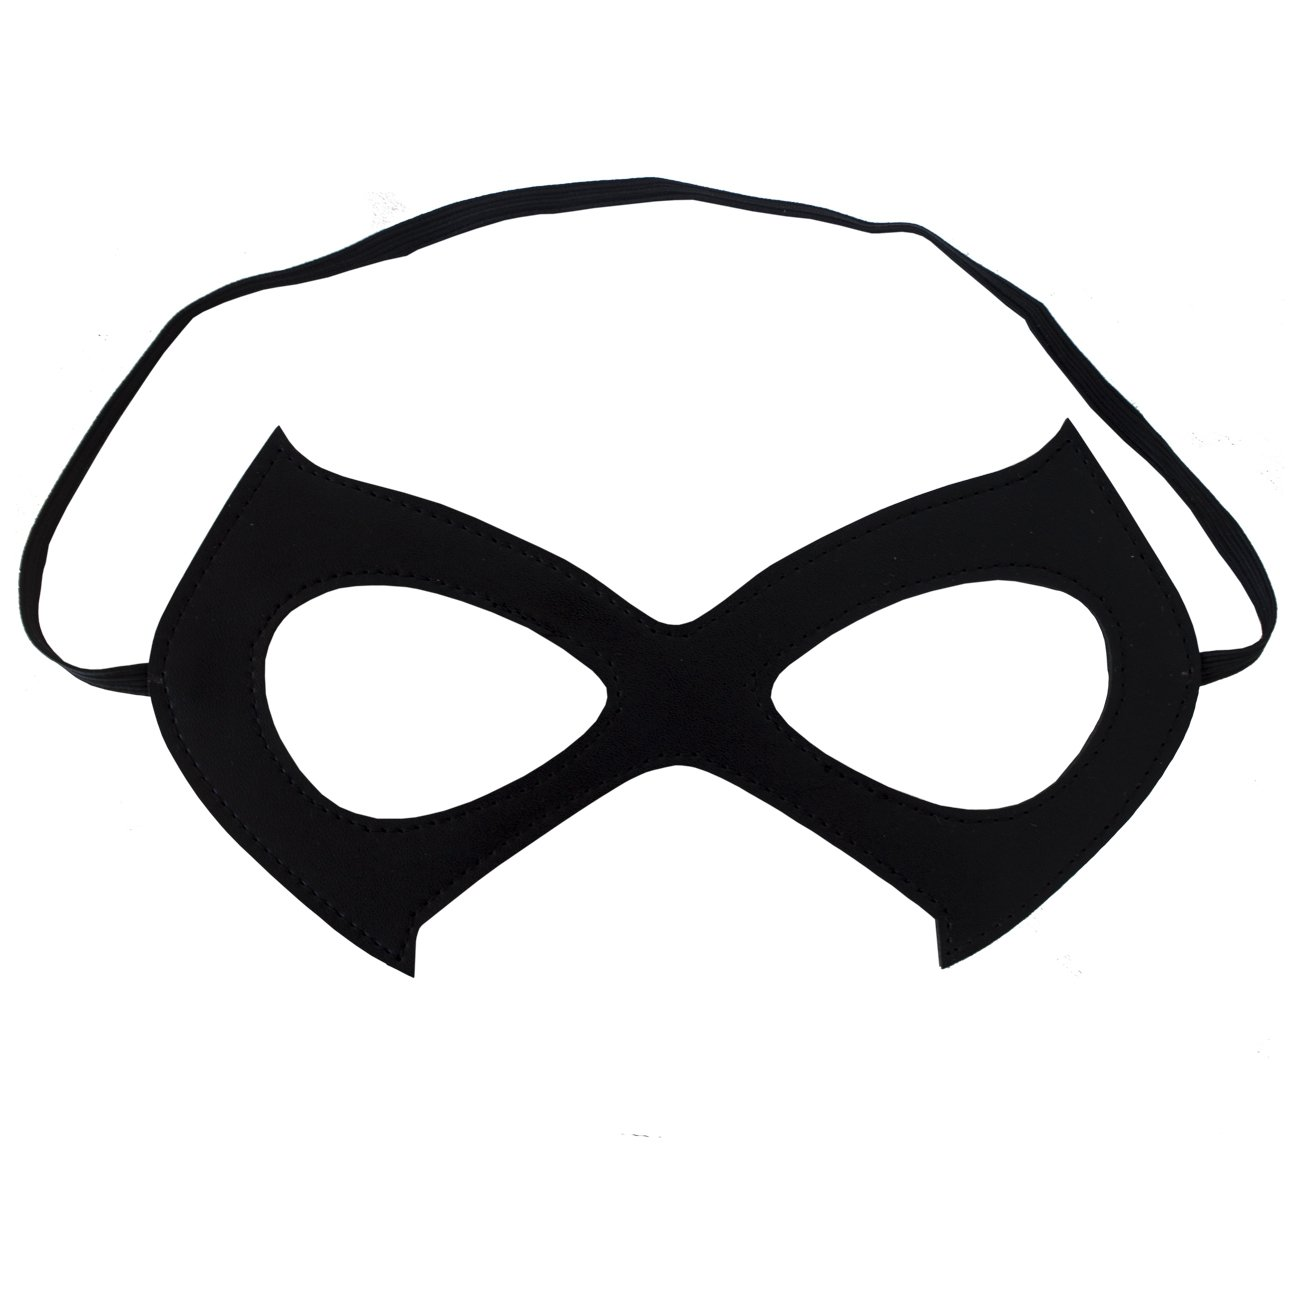 Cat Mask Costume Black Leather Eye Mask - Great Party/Cosplay/Dress-up/Mardi Gras Accessory by Cos Pro